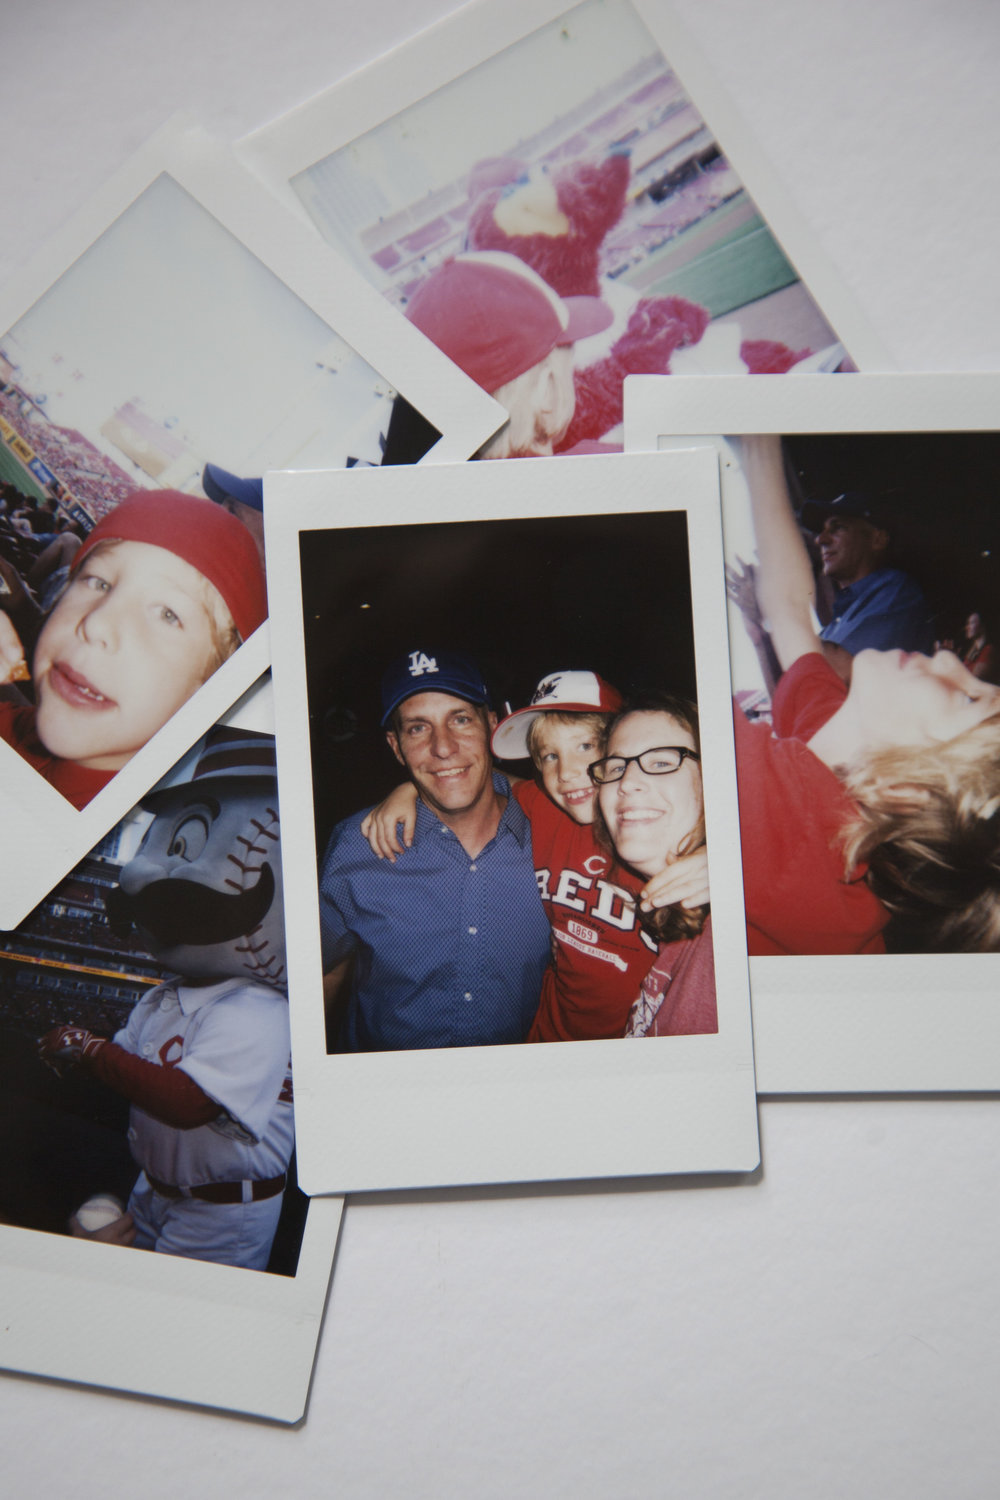 Day 31 - a perfect evening at a Reds Game in polaroids